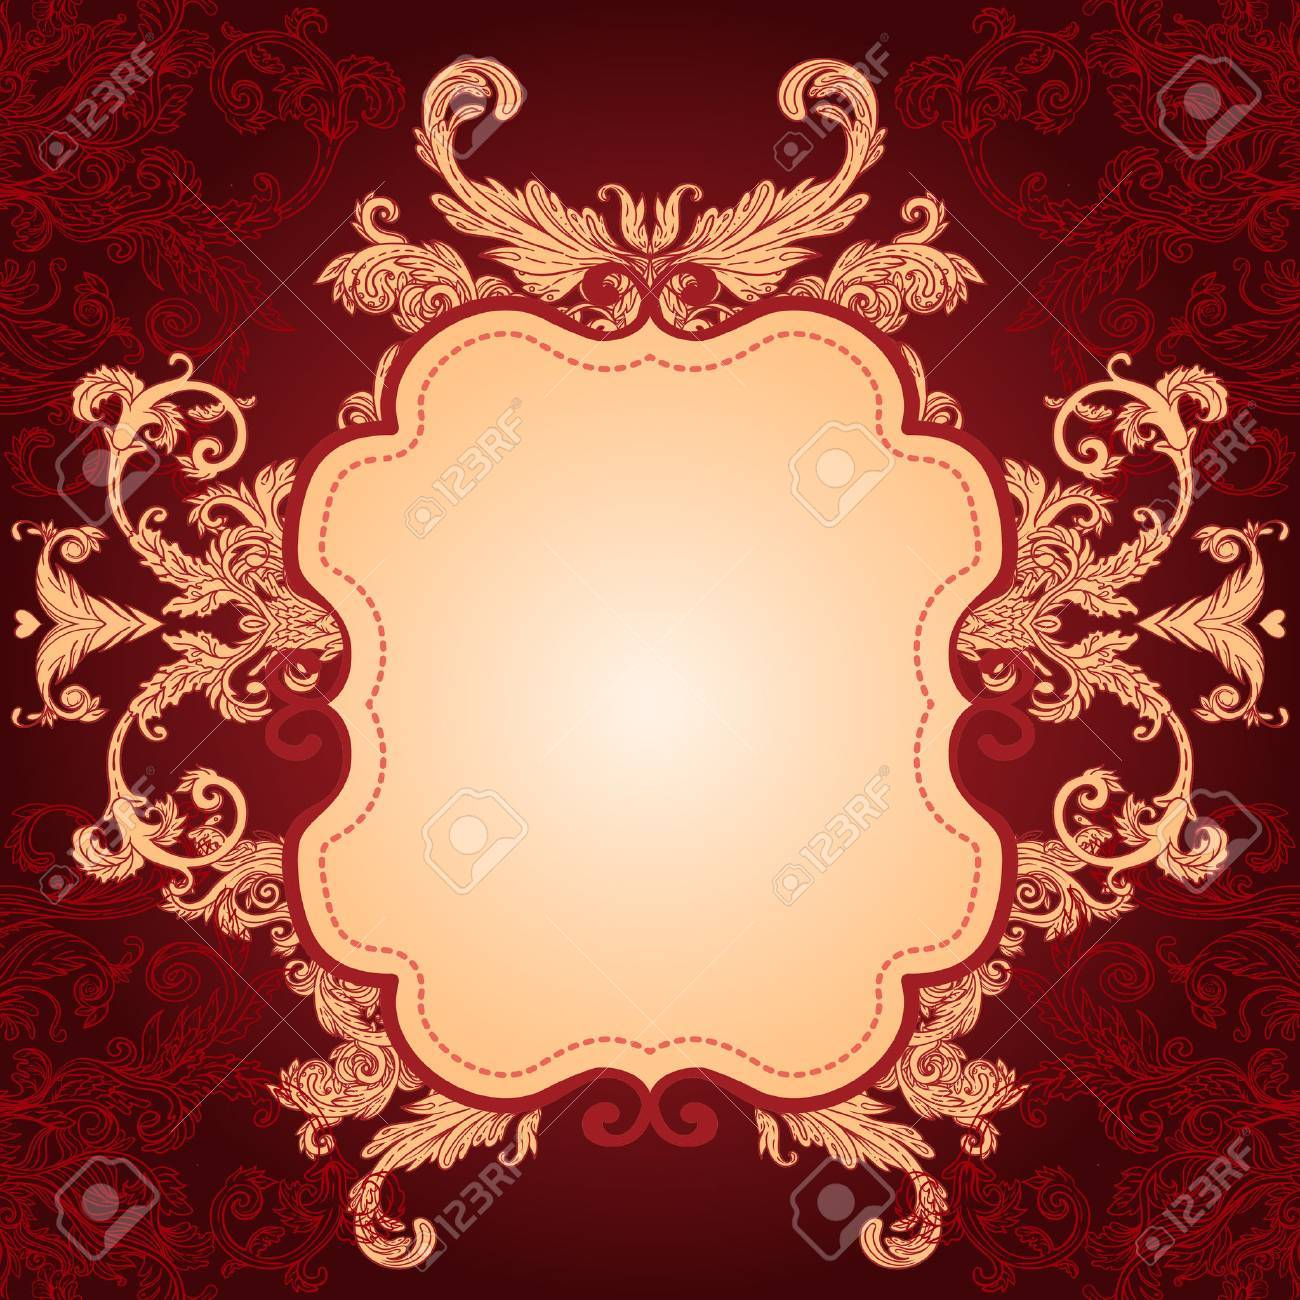 Vintage background ornate baroque pattern vector illustration stock - Vintage Background Ornate Baroque Pattern Vector Illustration Stock Vector 33591872